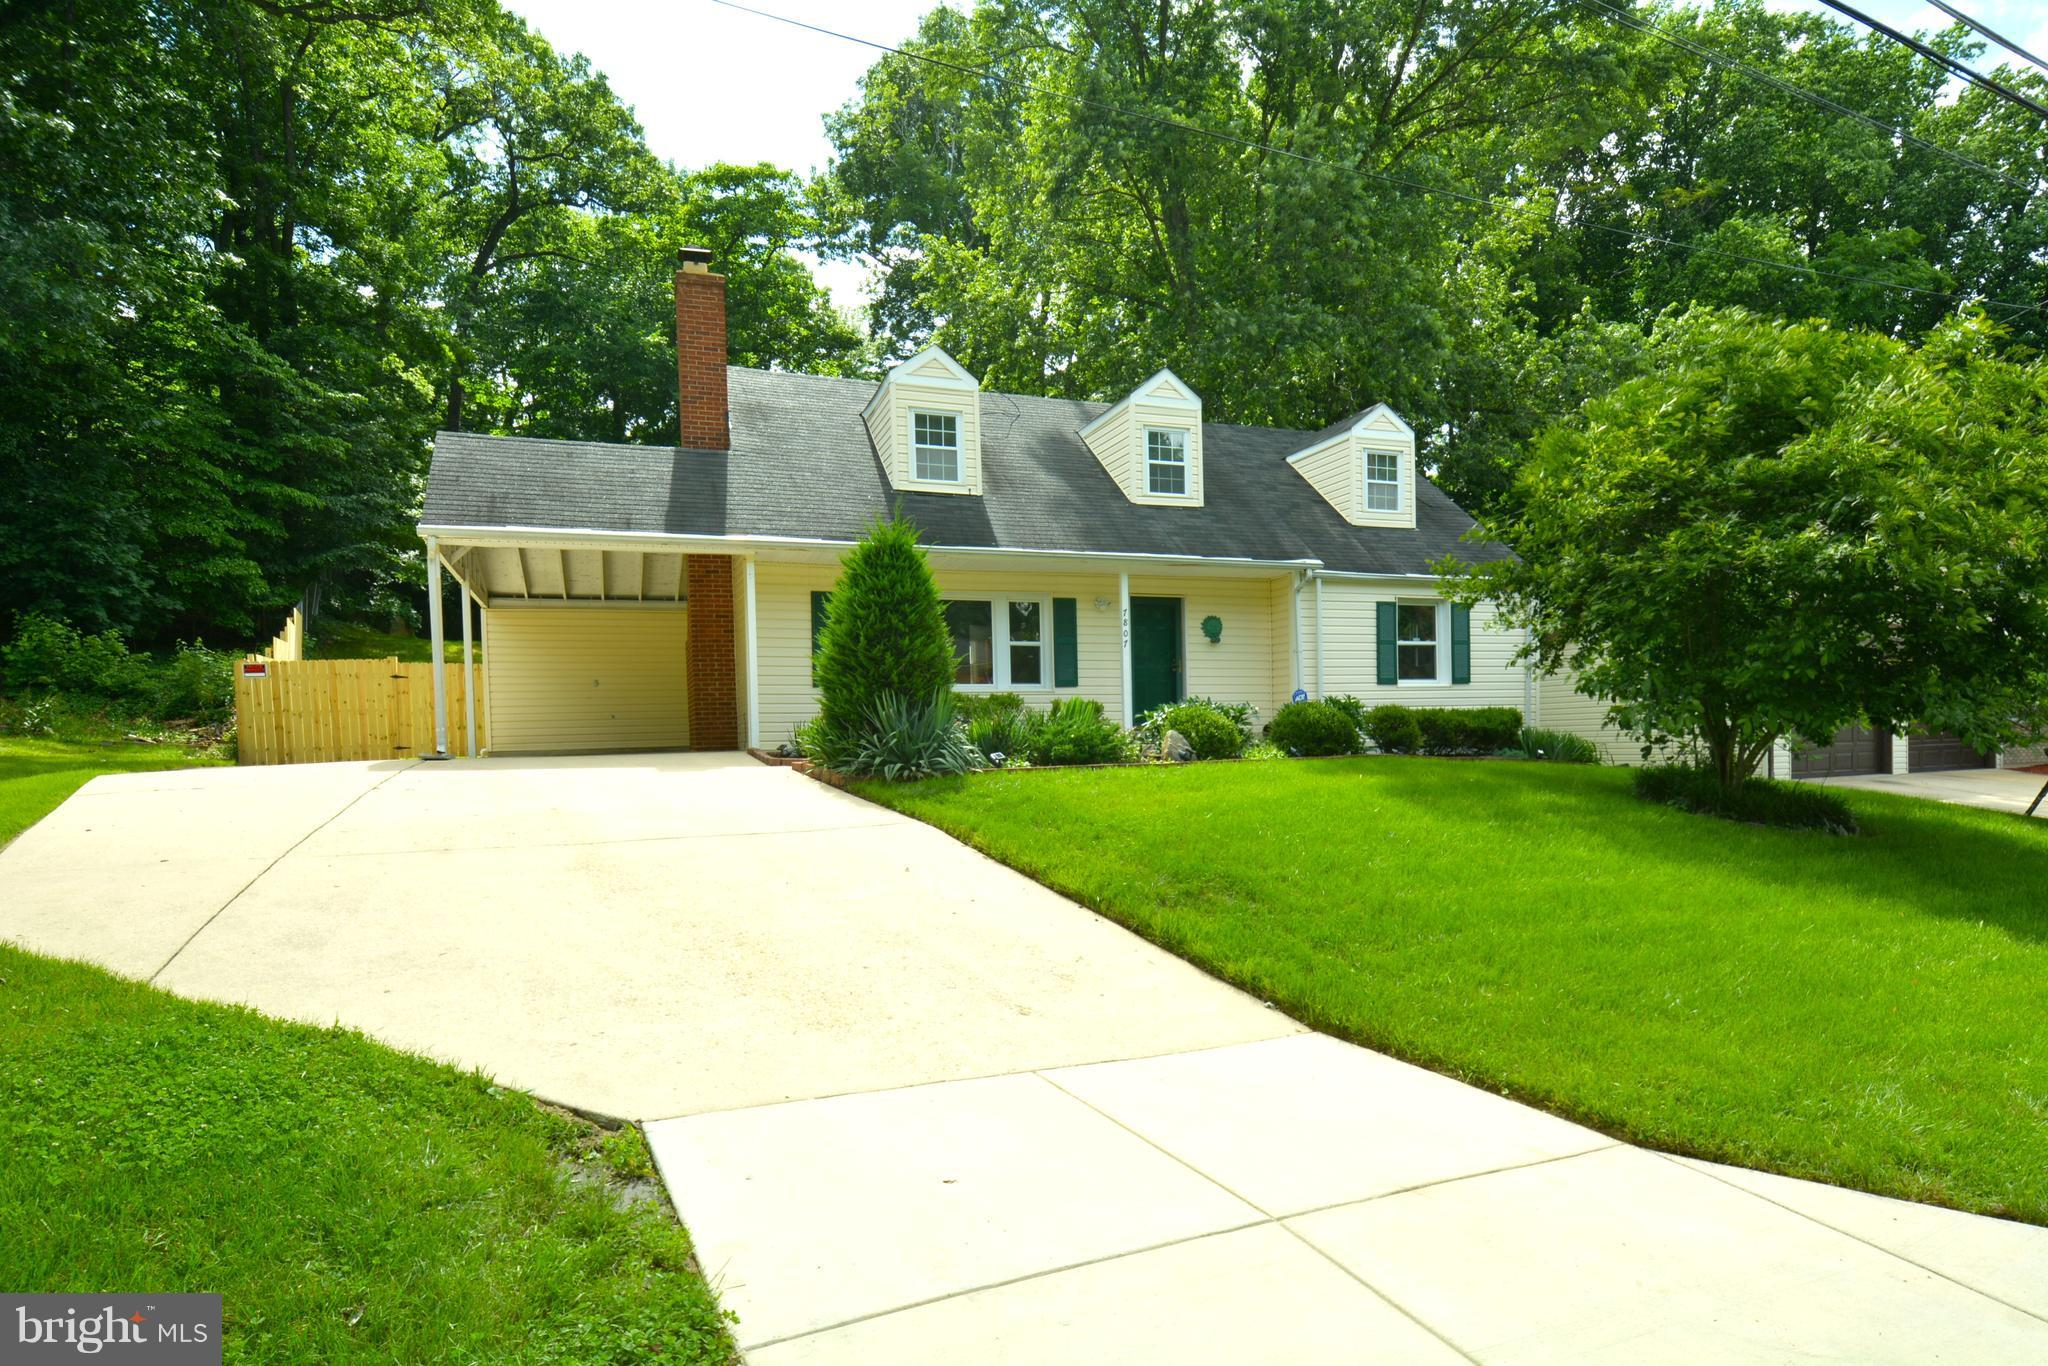 This one is a 10+. 3 lvls freshly painted, 5 bdrms, 3.5 baths w/fenced yard & screened porch. Close